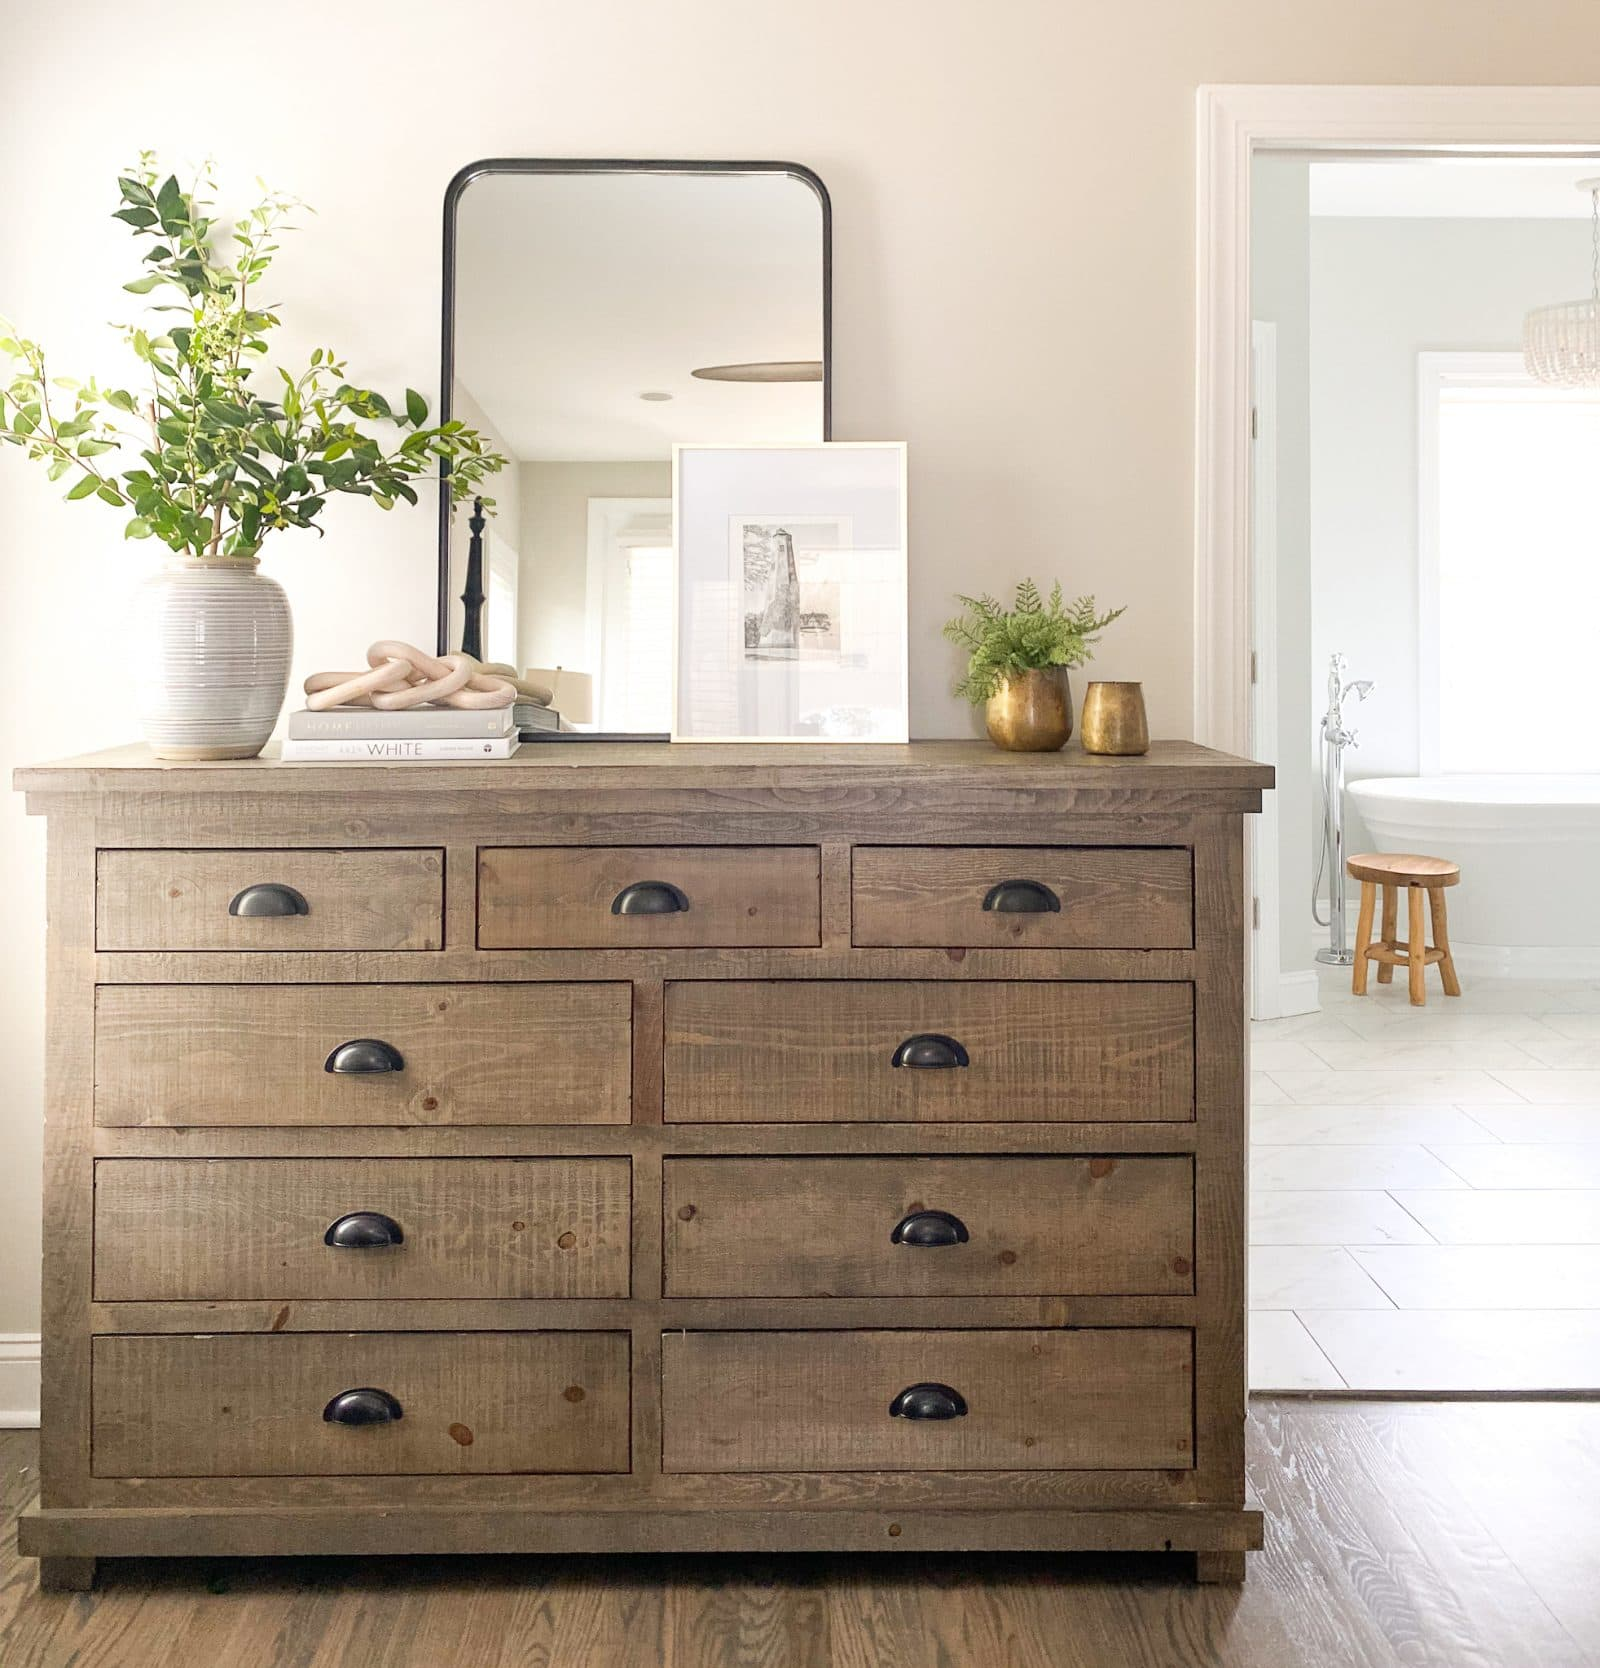 Wood dresser with agreeable gray walls behind